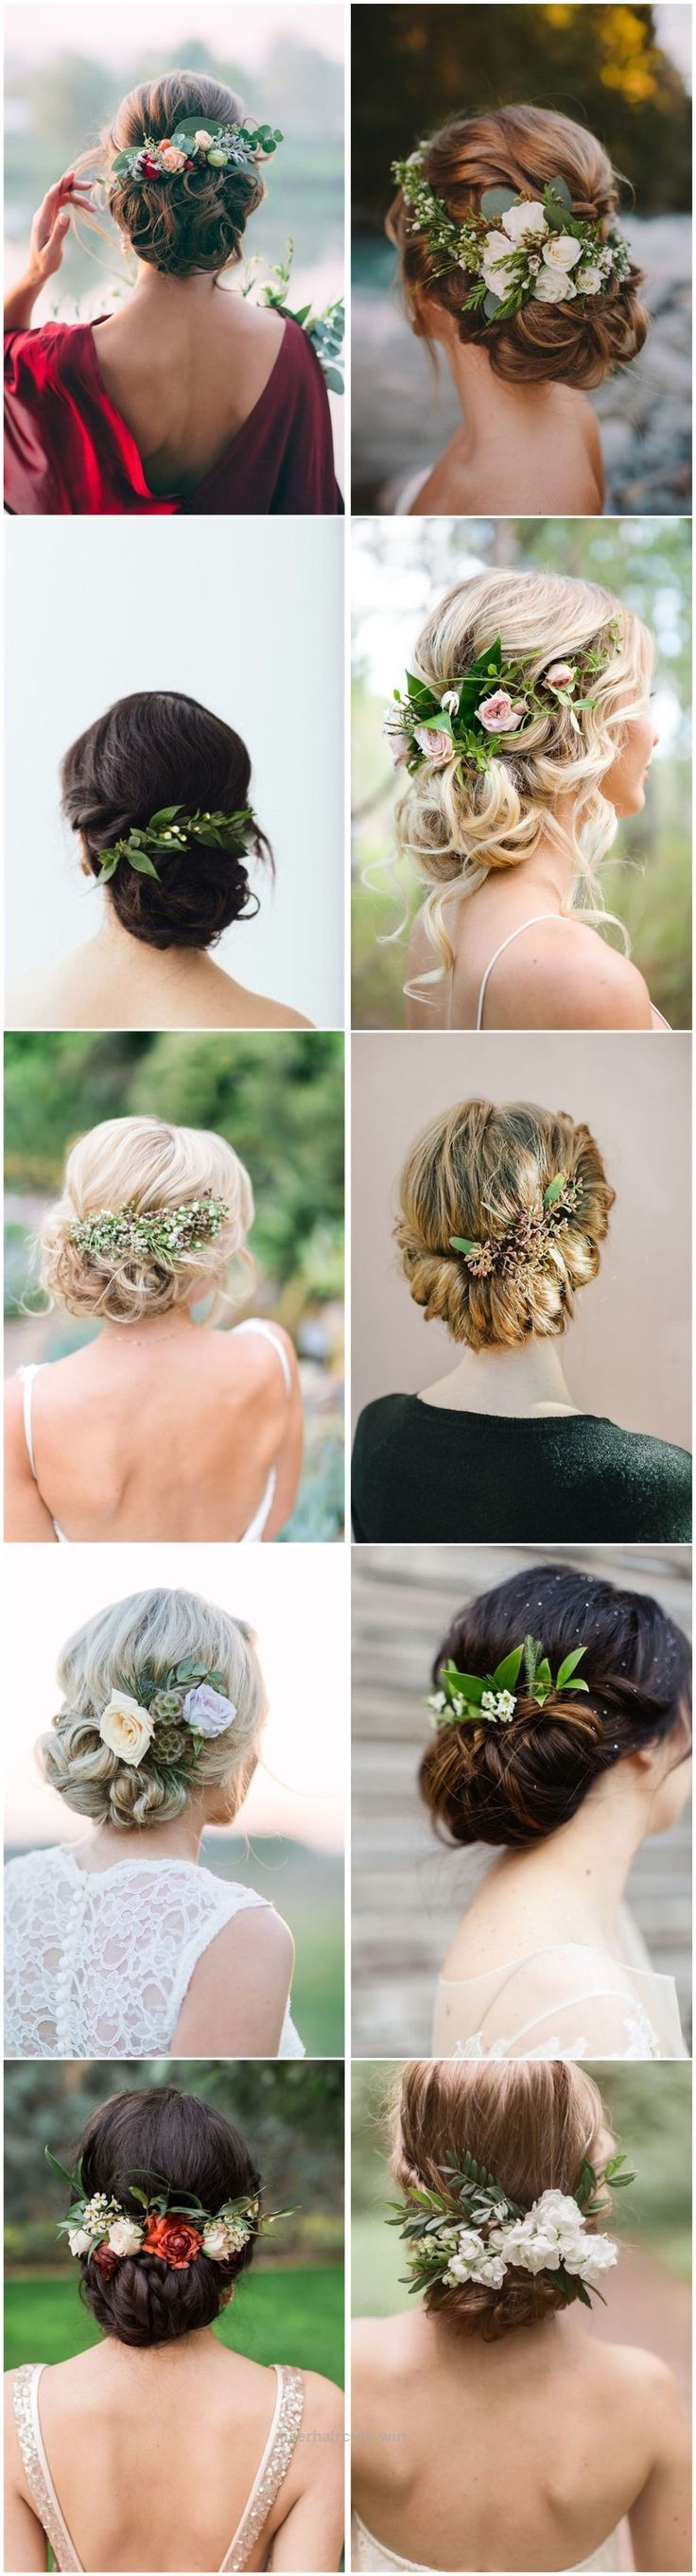 Incredible Wedding Hairstyles»18 Wedding Updo Hairstyles with Greenery Decorations >>  ❤️ See more:  blanketcoveredlov…  The post  Wedding Hairstyles»18 Wedding Updo Hairstyles with  ..